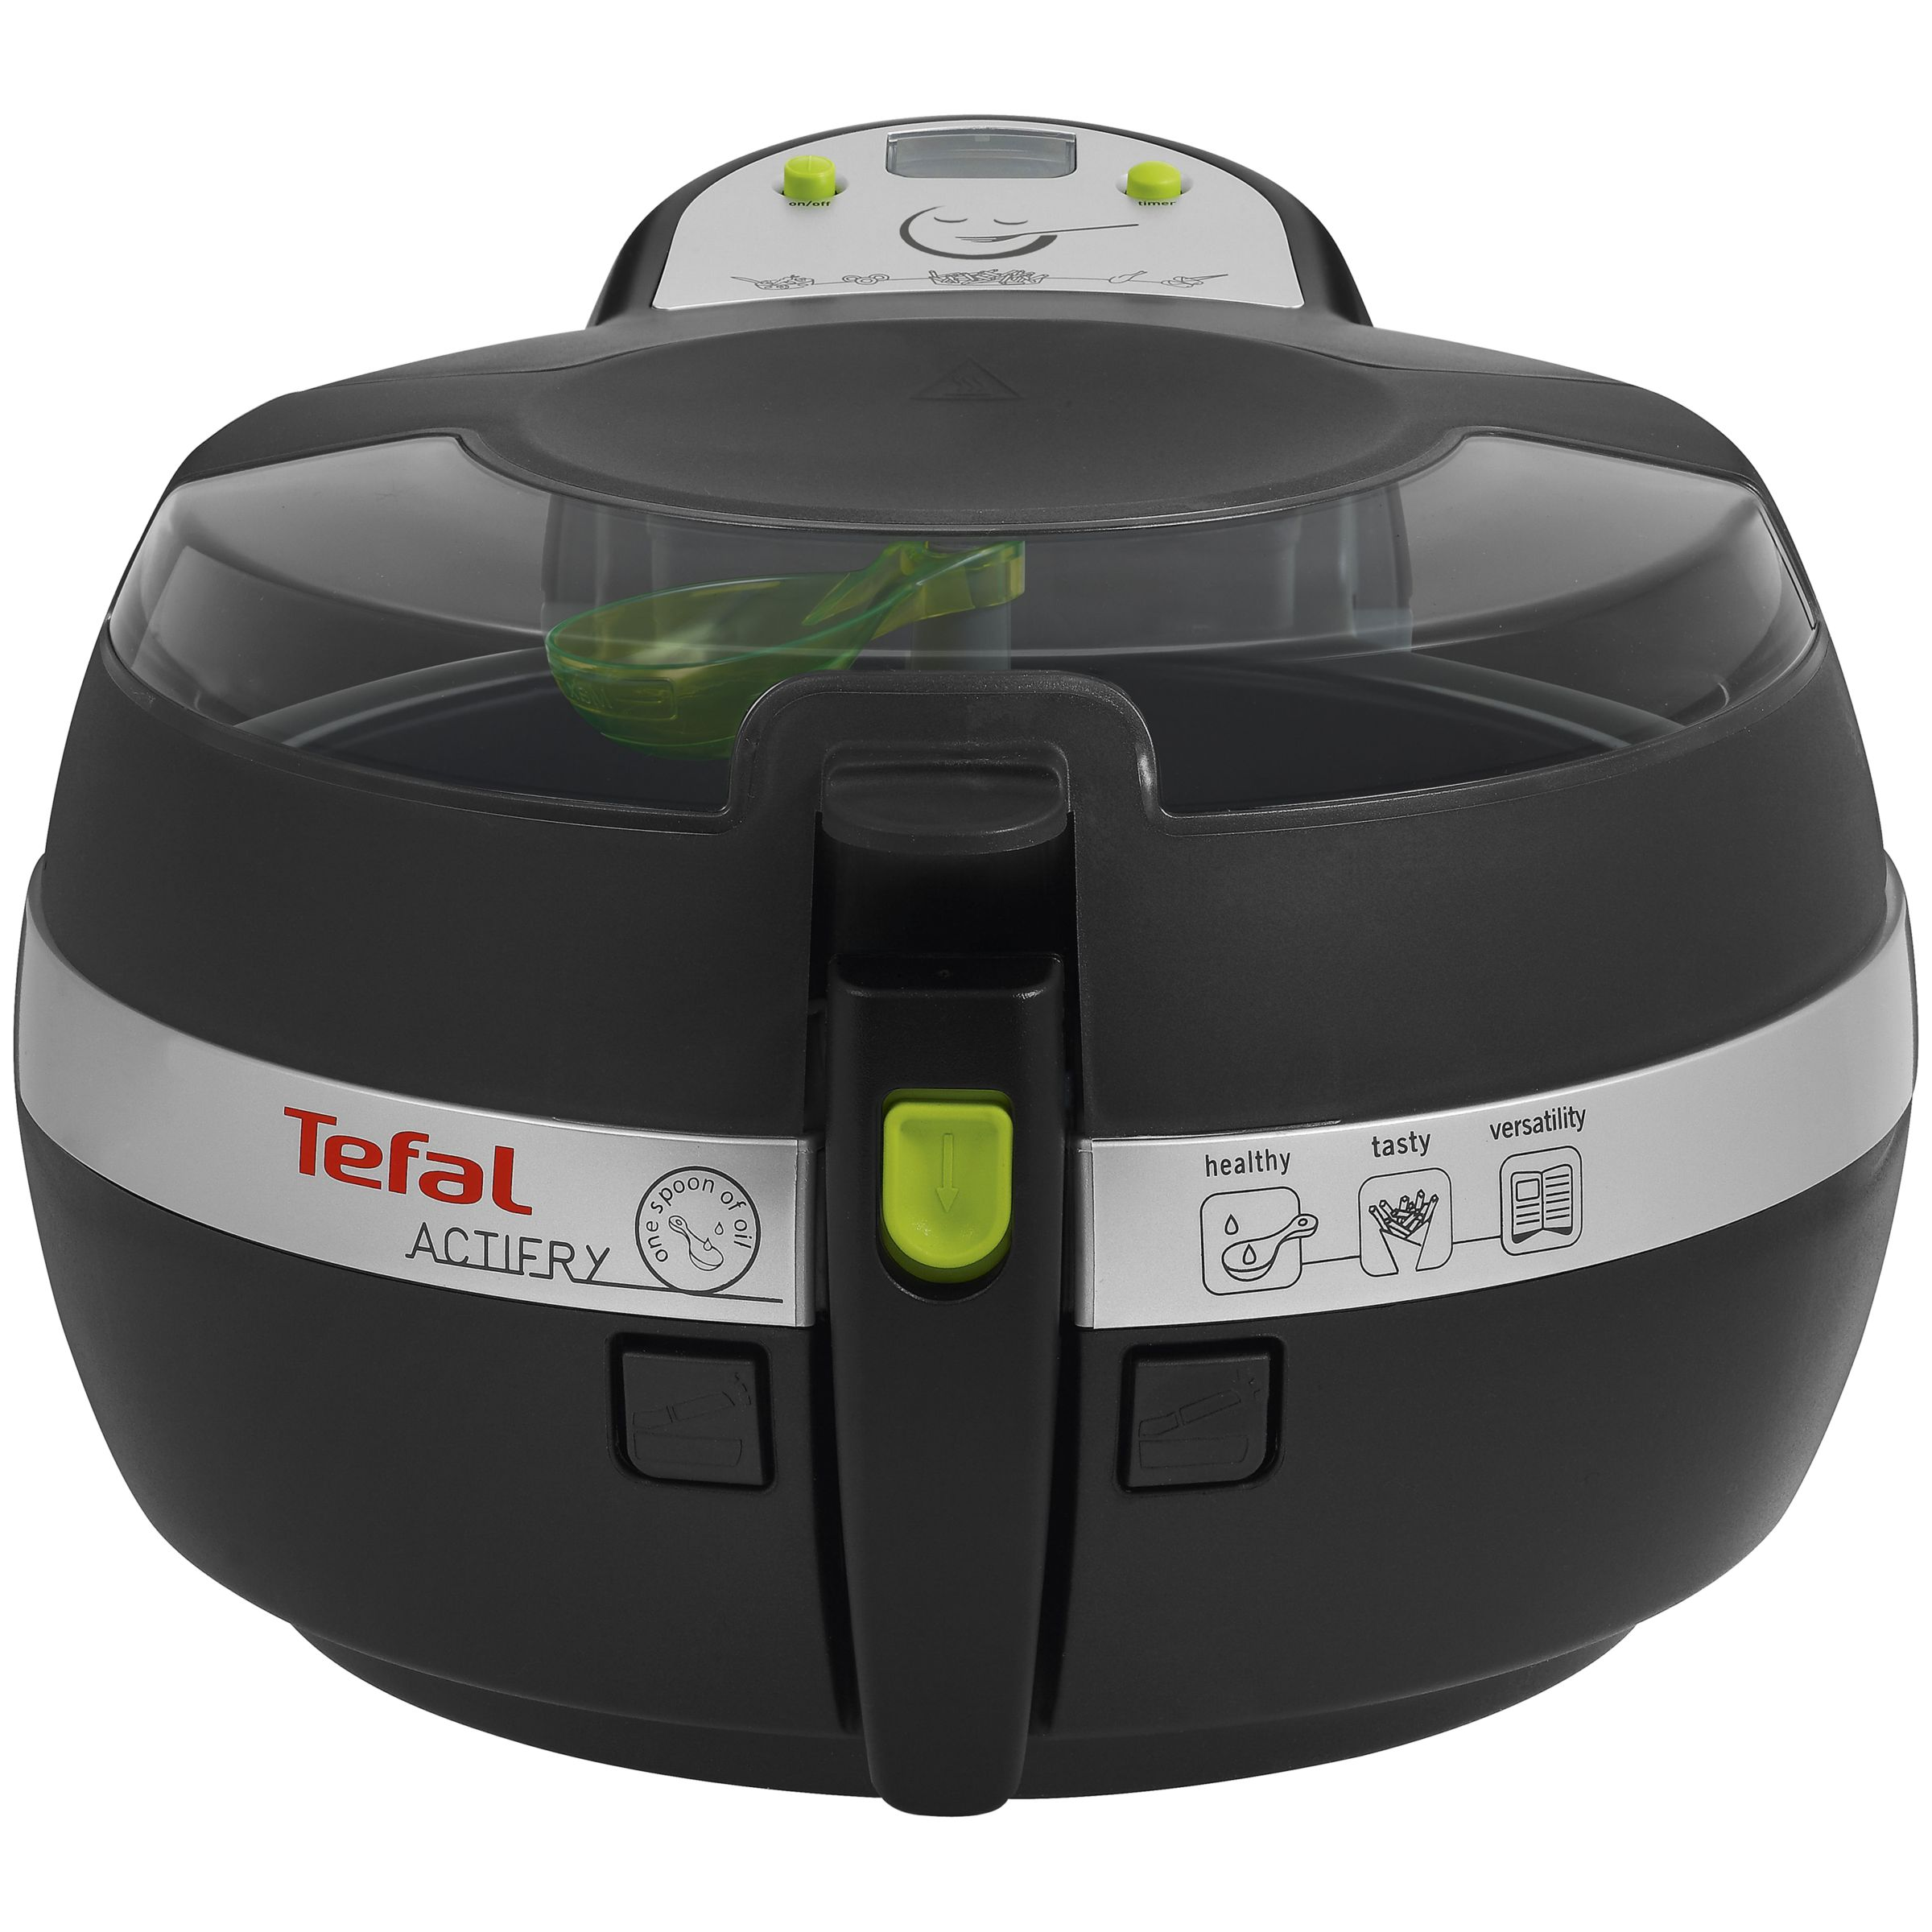 Tefal ActiFry Low Fat Fryer Black